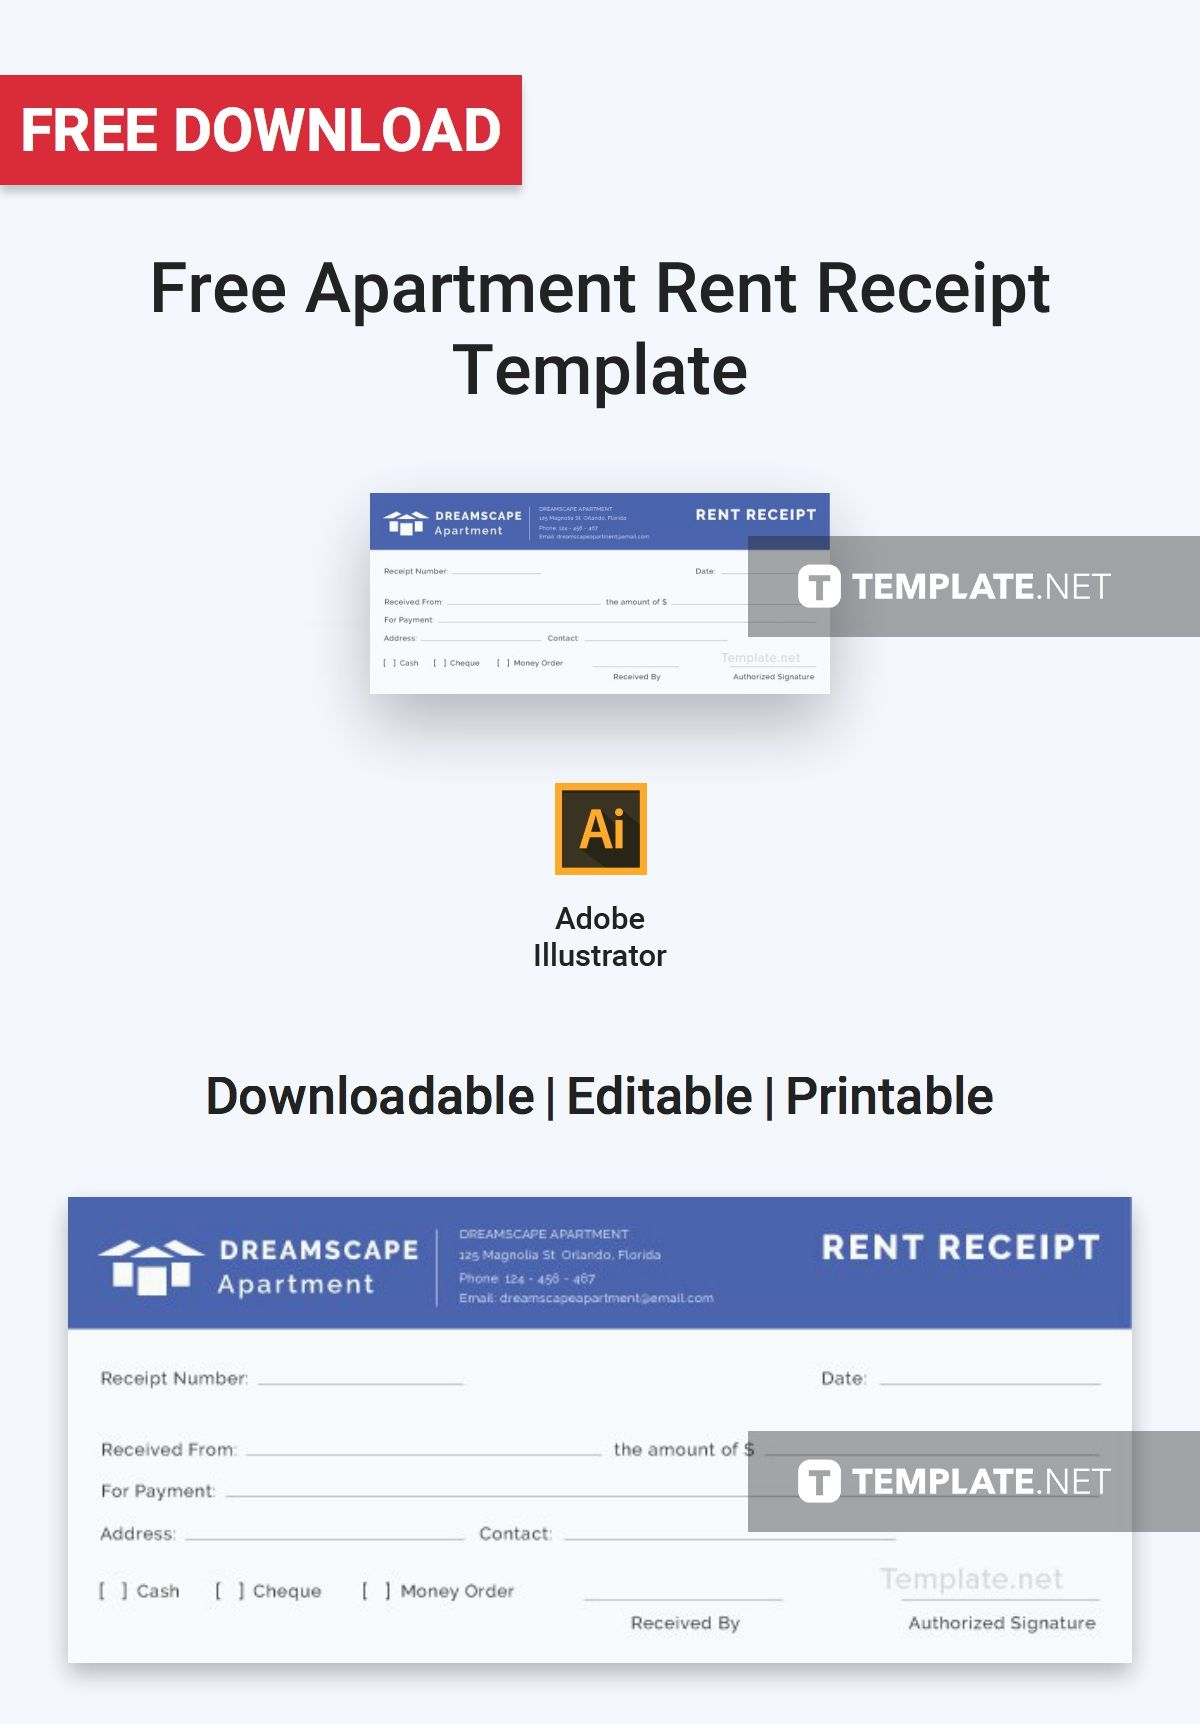 Simple Apartment Rent Receipt Template Free Pdf Google Docs Google Sheets Excel Word Template Net Receipt Template Free Receipt Template Apartments For Rent